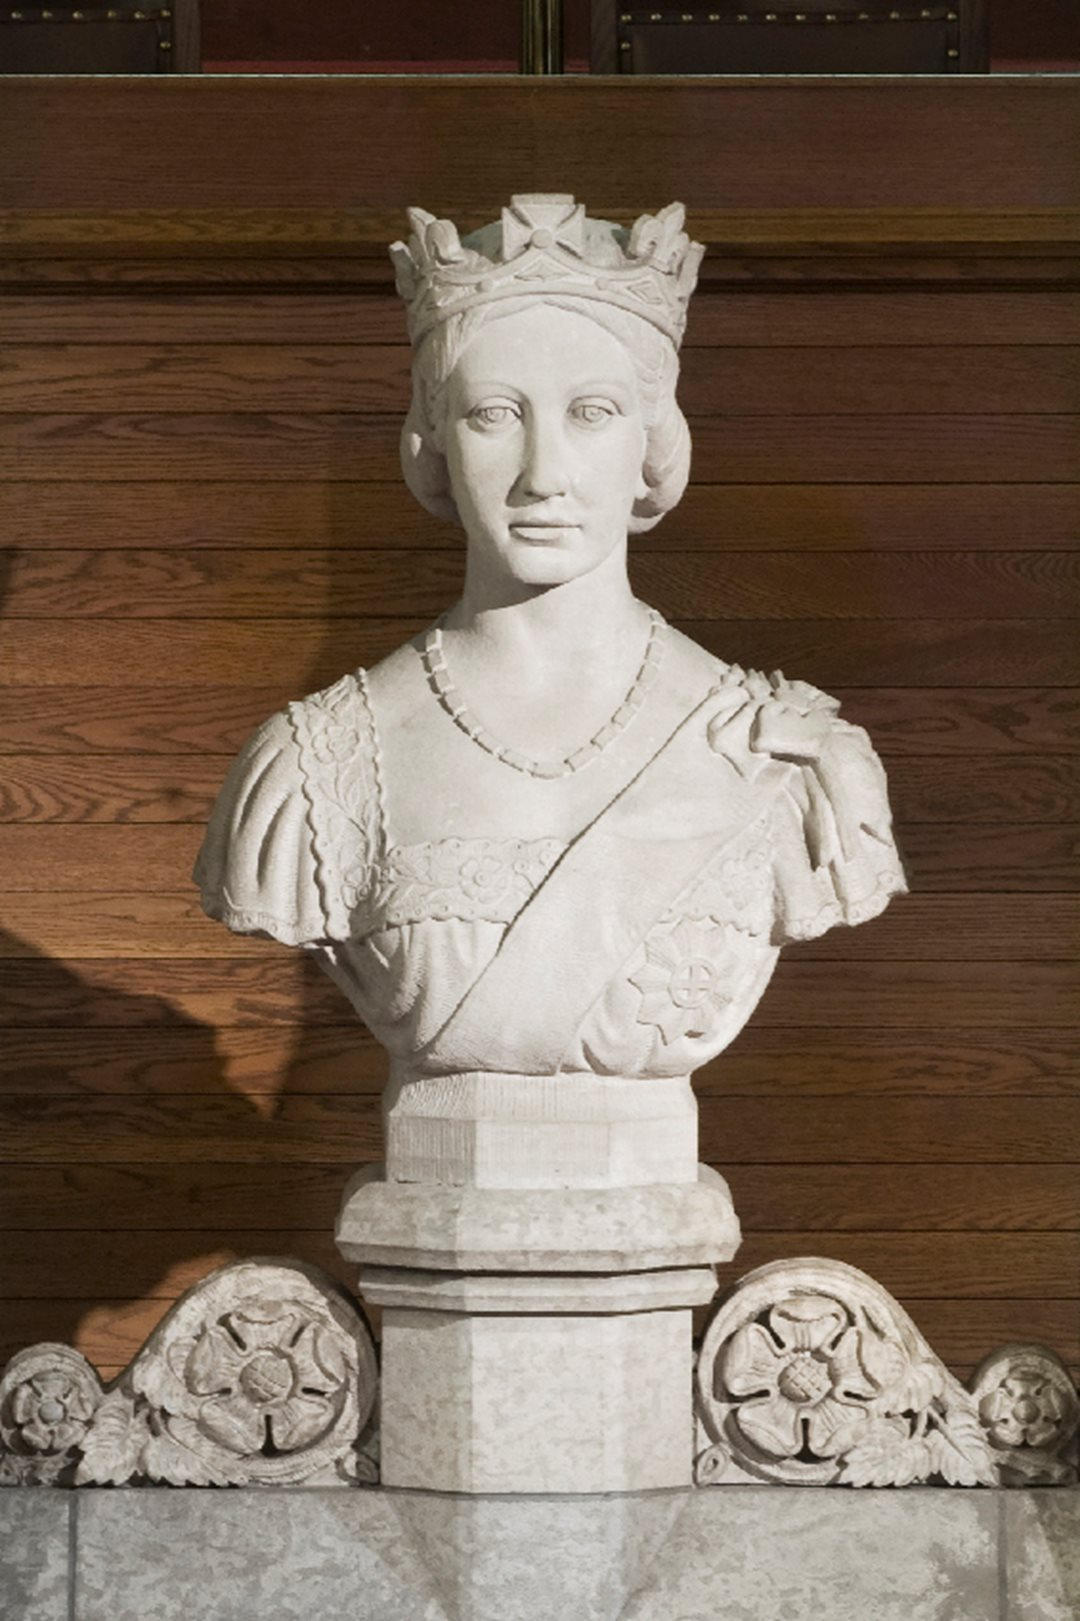 A marble bust of Victoria surveys the Senate from its position above the thrones and Speaker's chair.